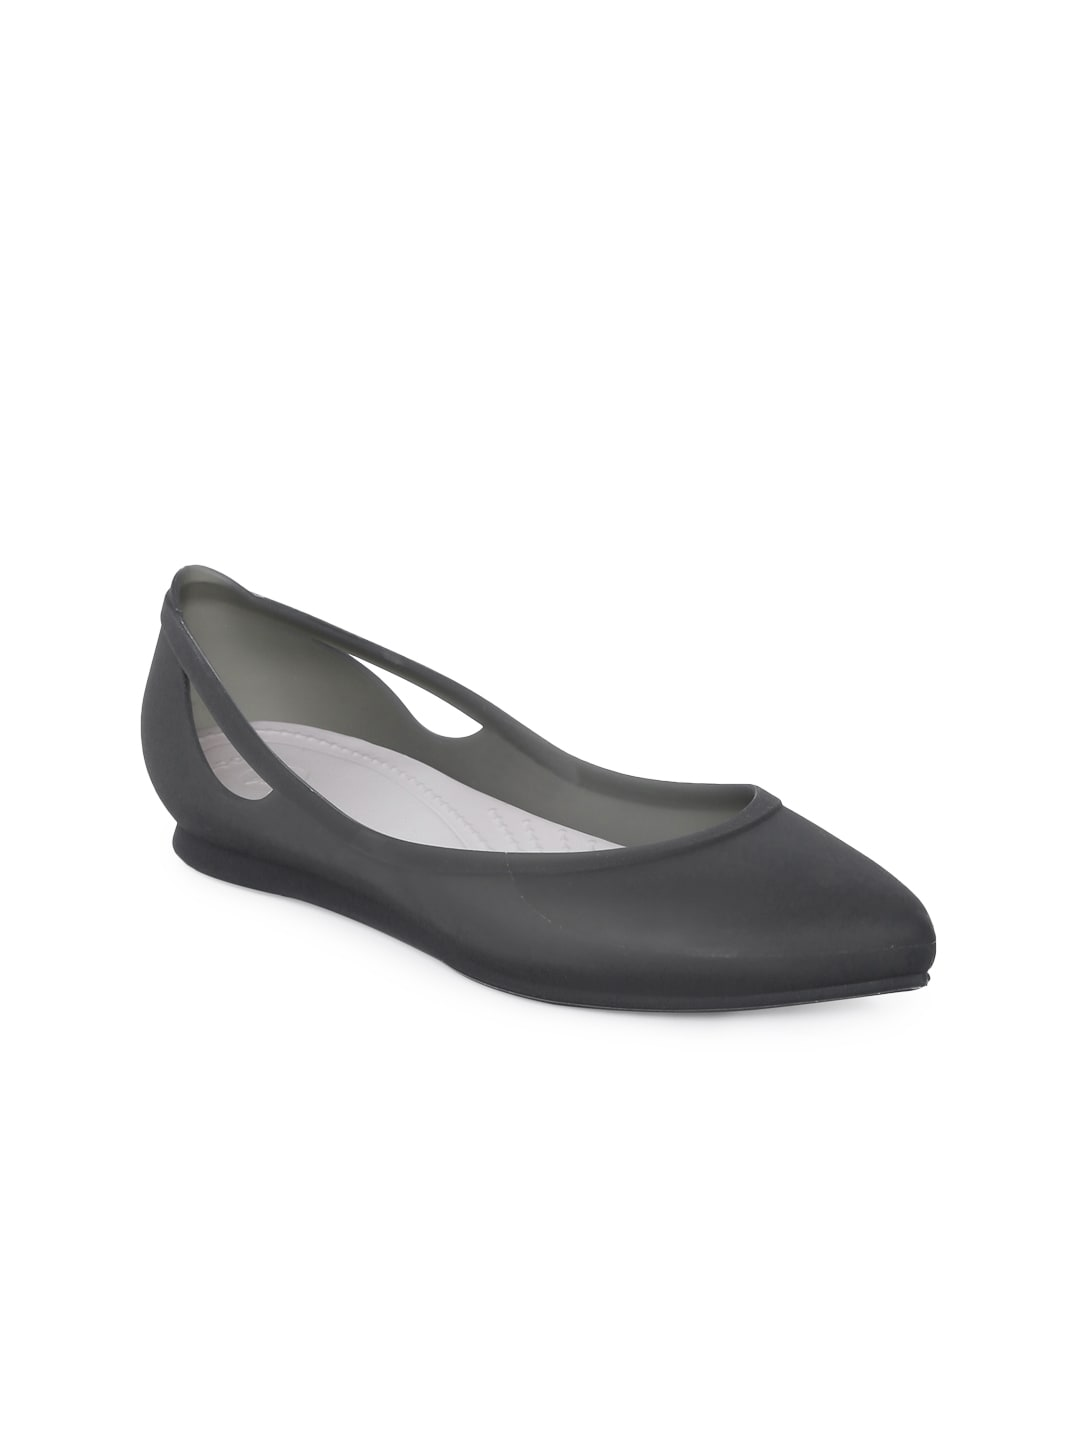 e19a9063378b Ladies Sandals - Buy Women Sandals Online in India - Myntra